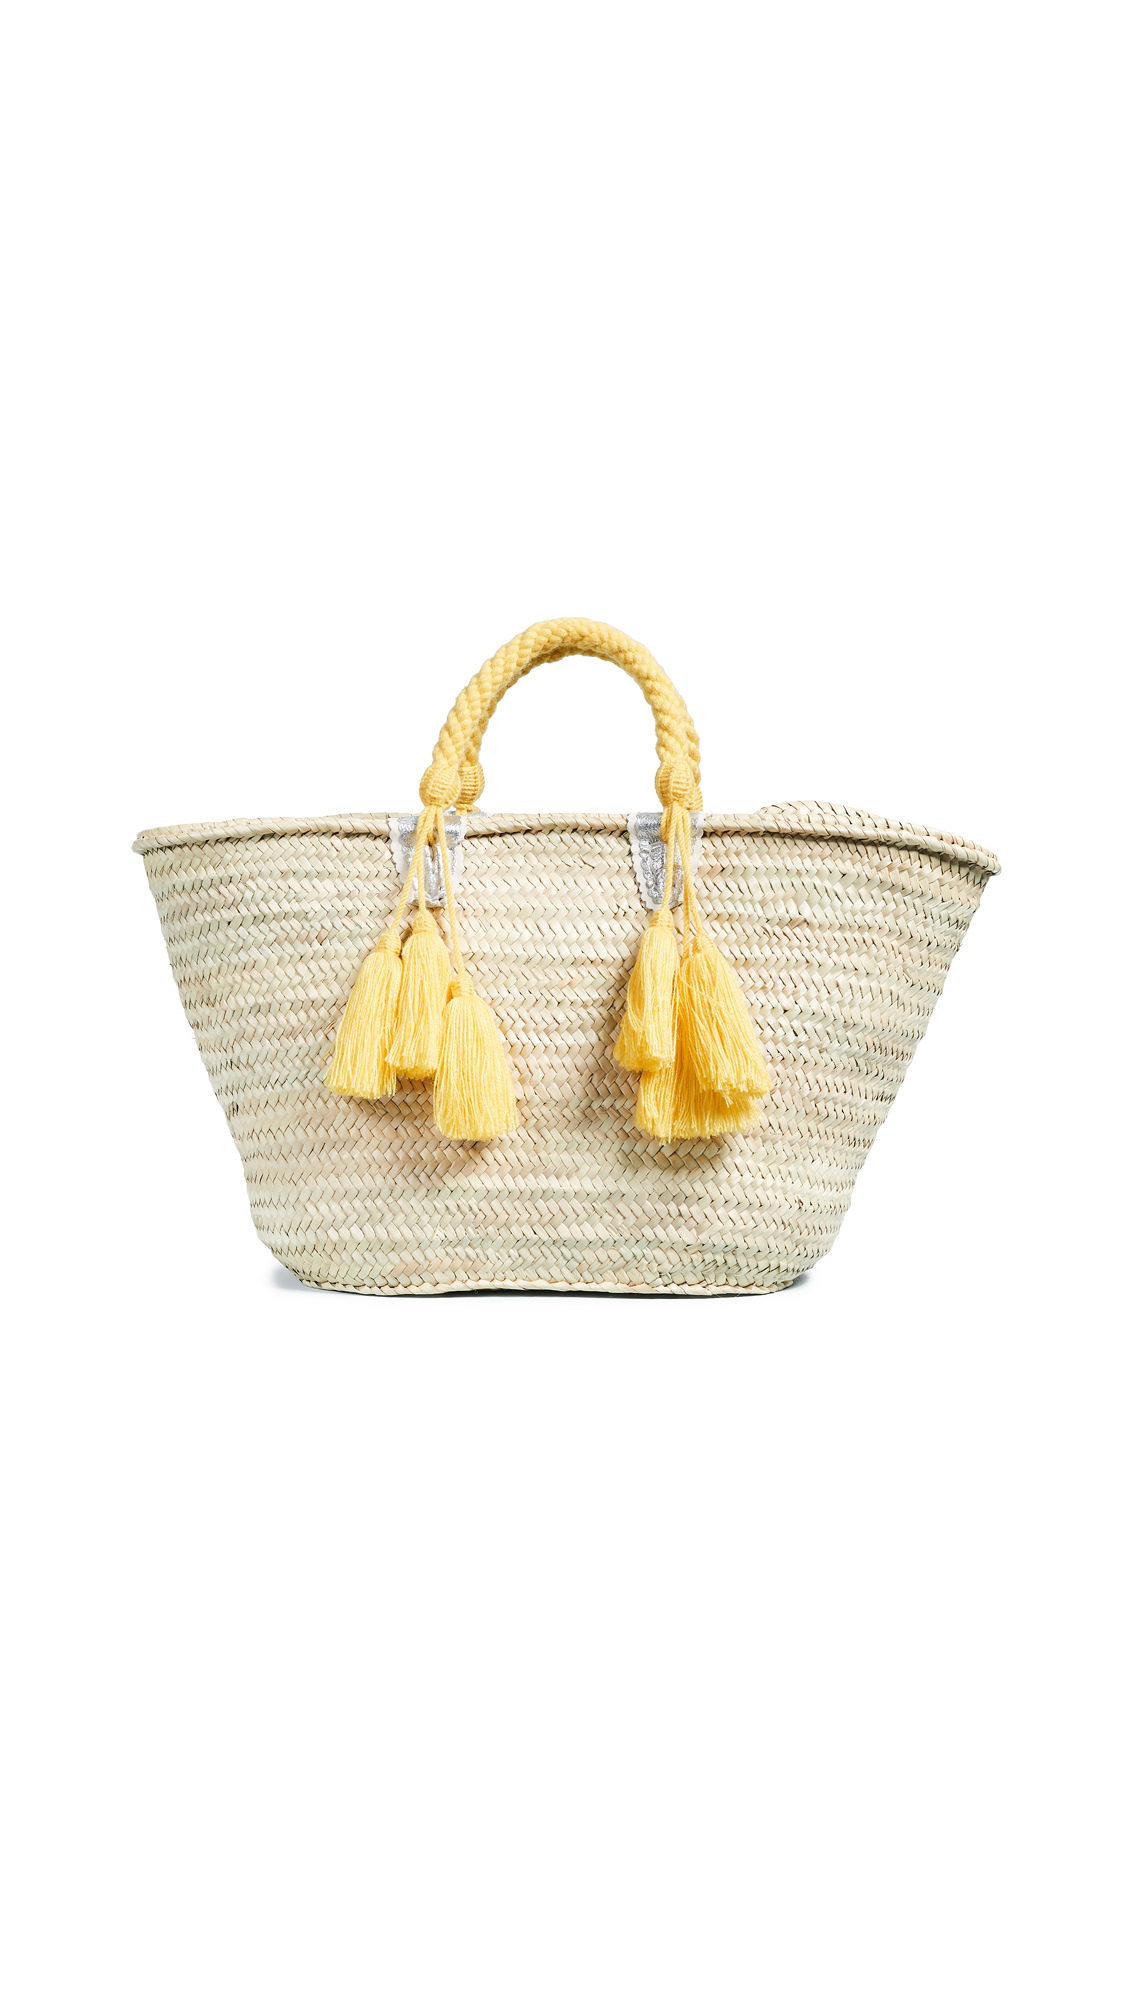 Giselle Agathe Straw Tote